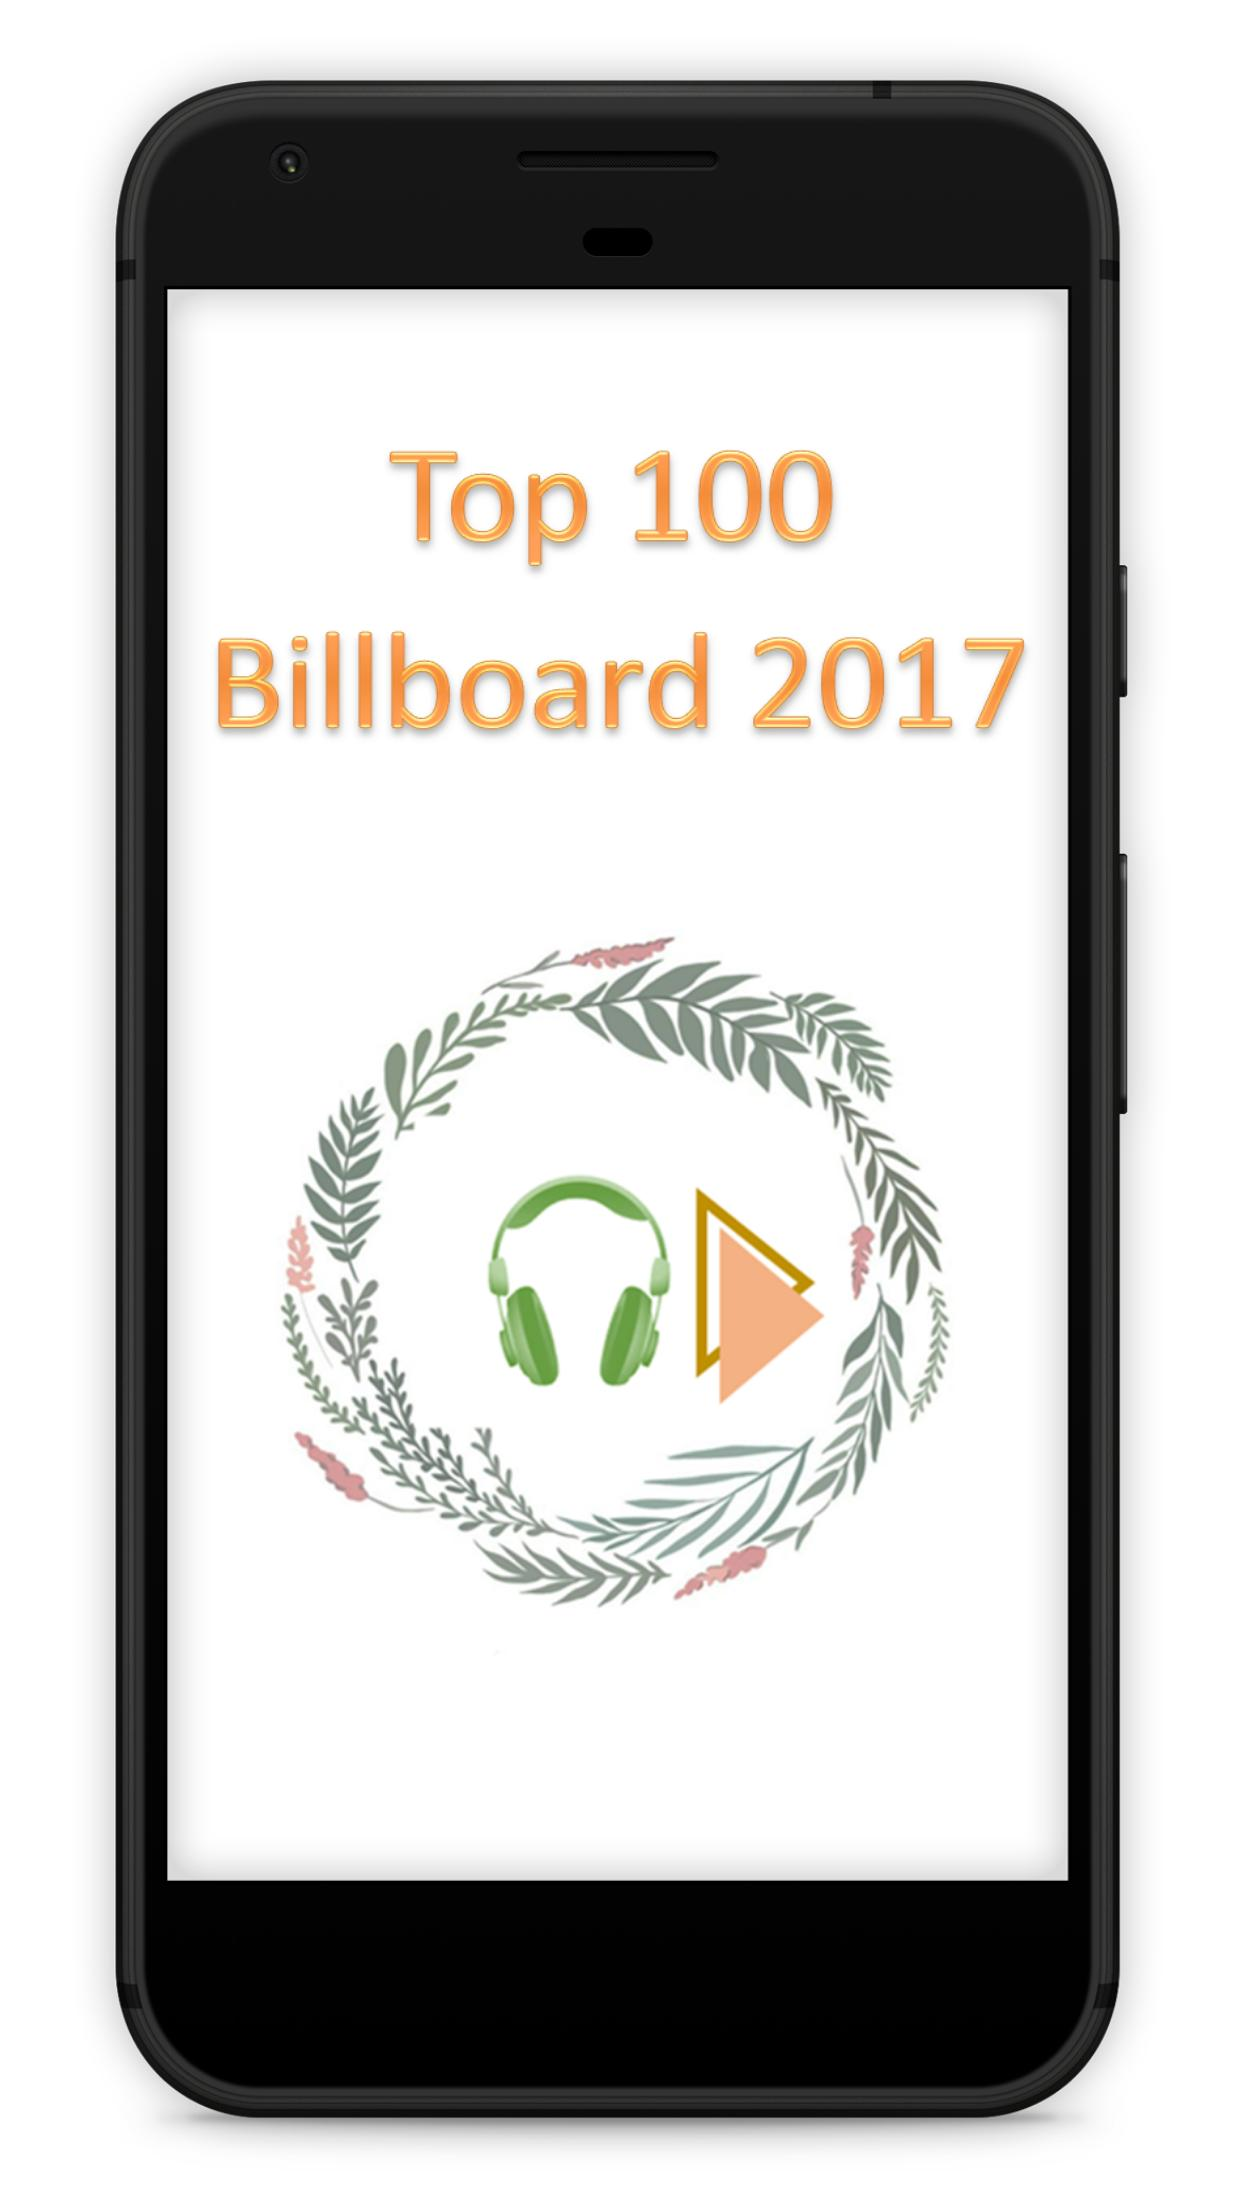 Top 100 Billboard 2017 for Android - APK Download